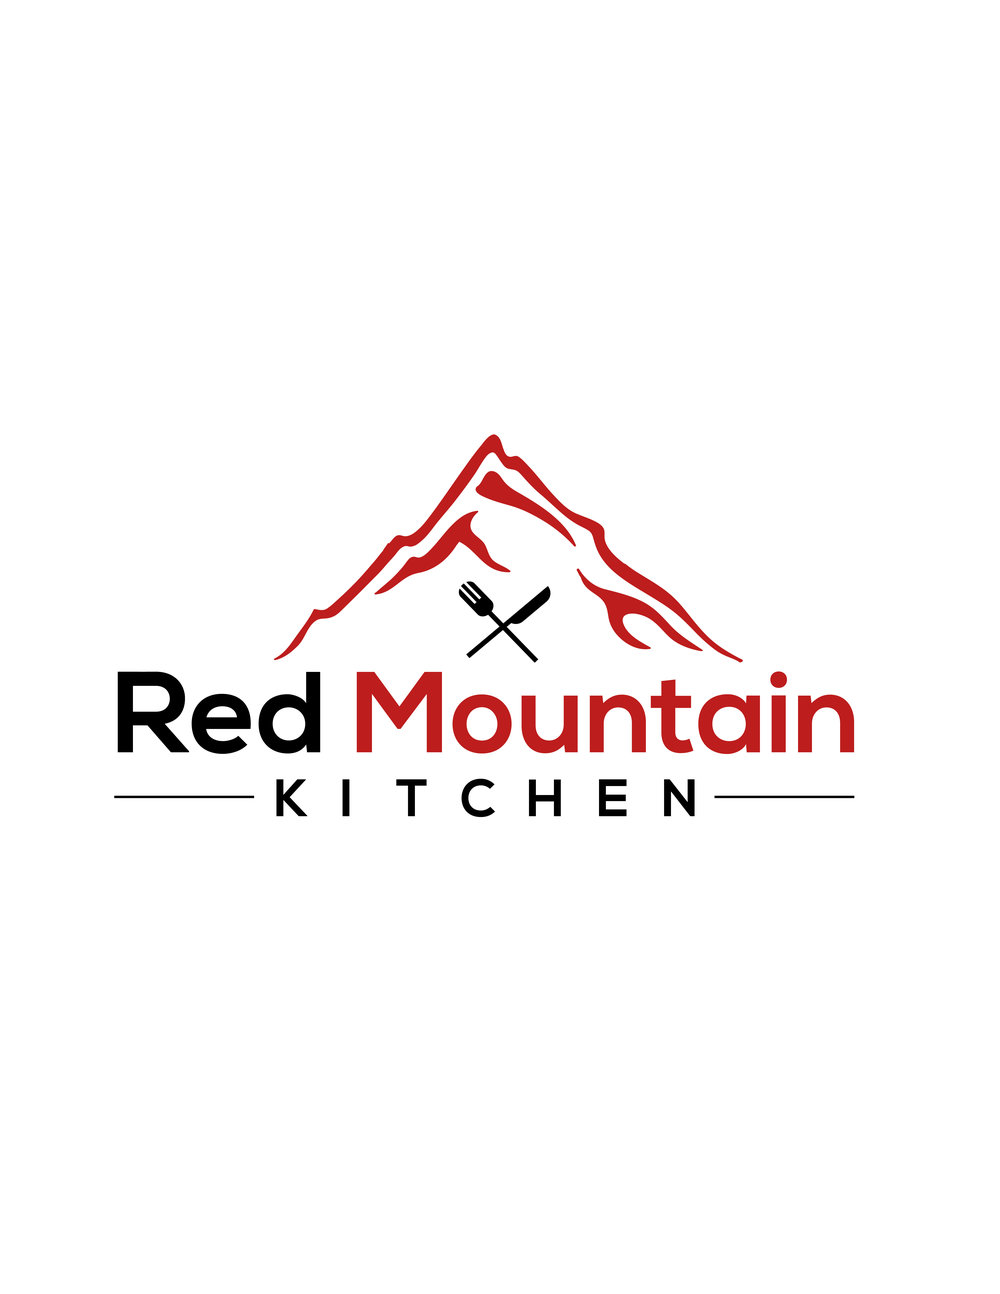 Red Mountain Kitchen.jpg